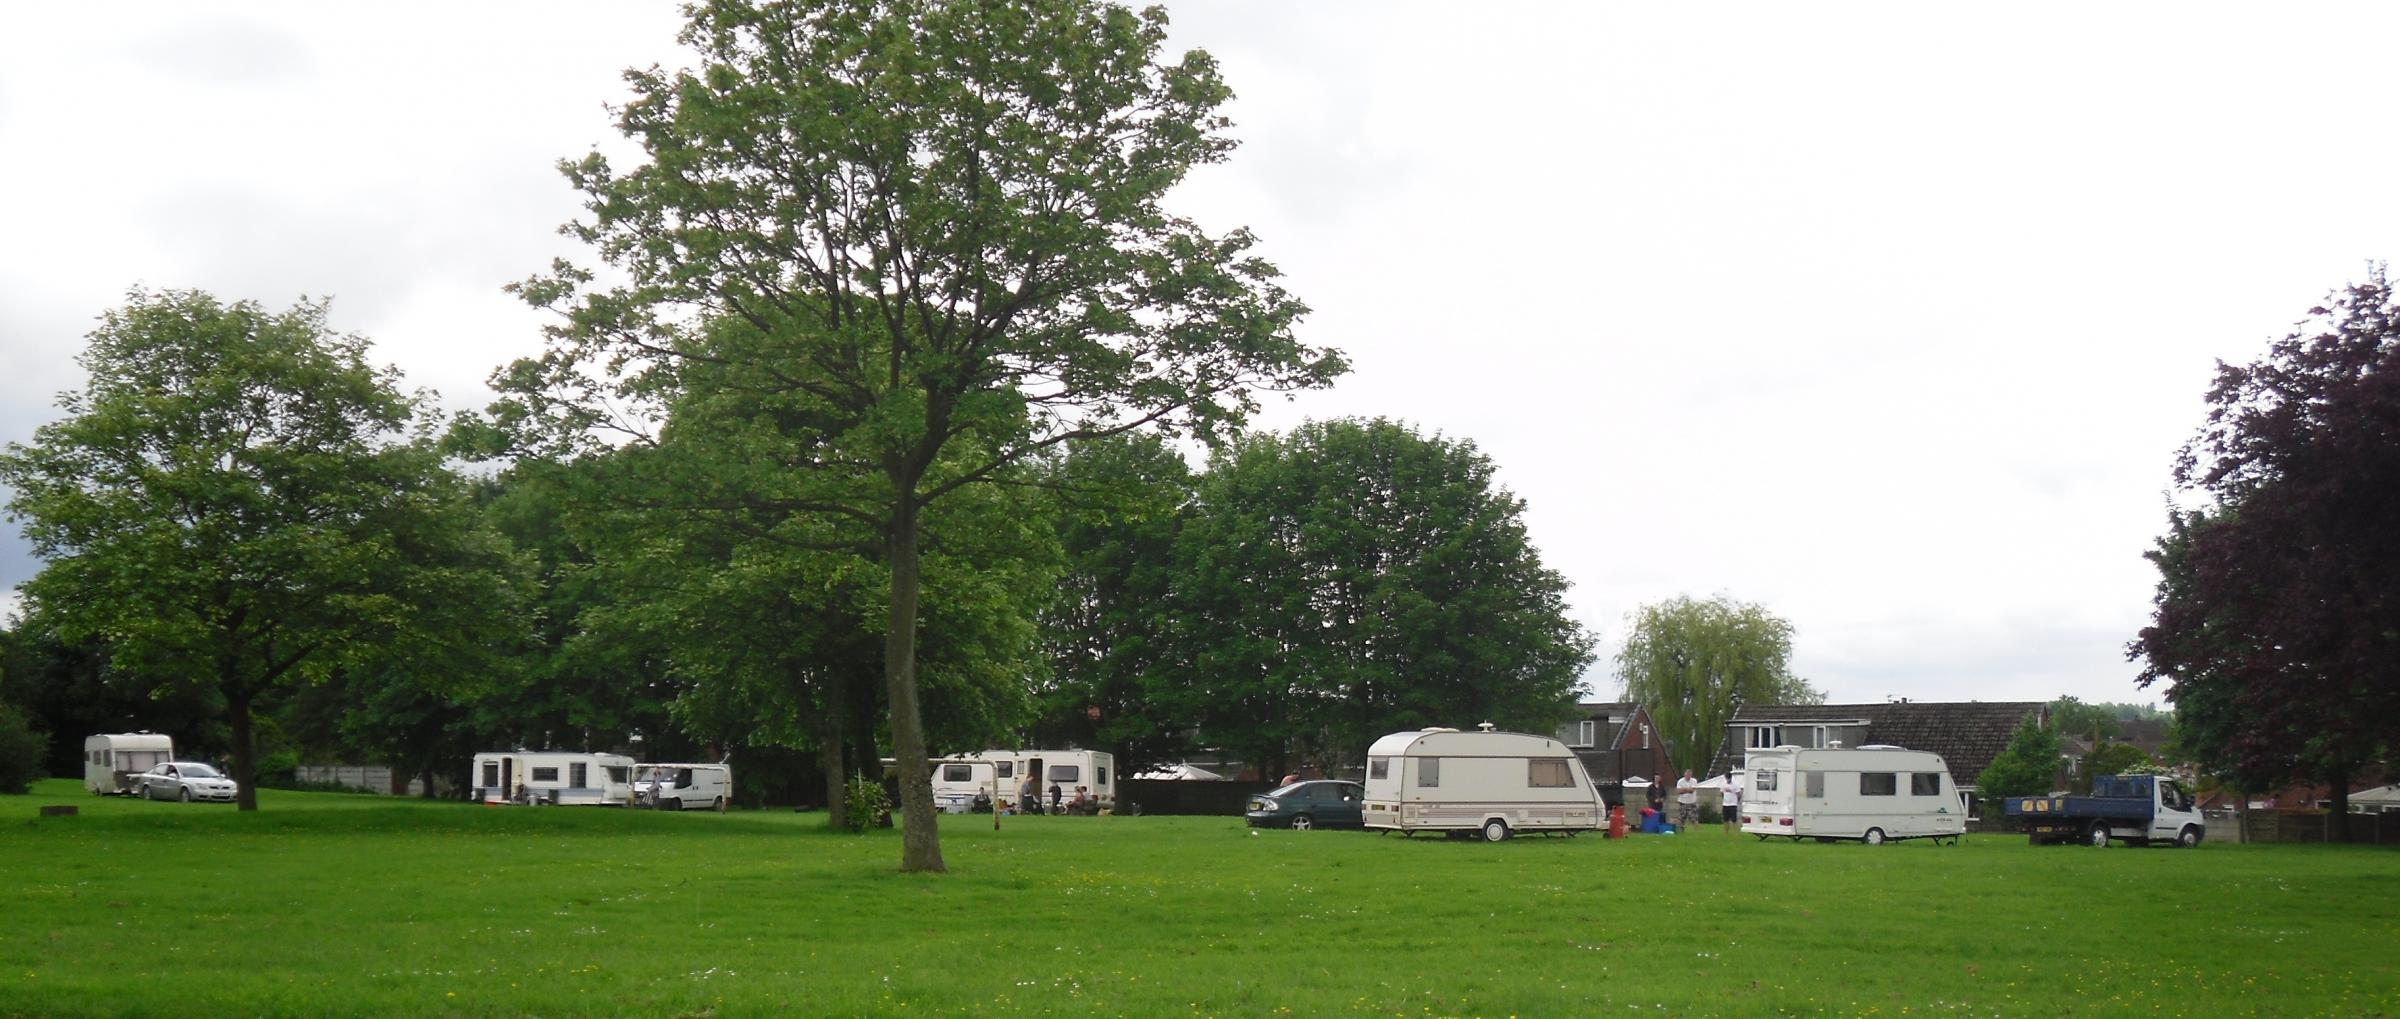 Travellers set up camp in Little Lever